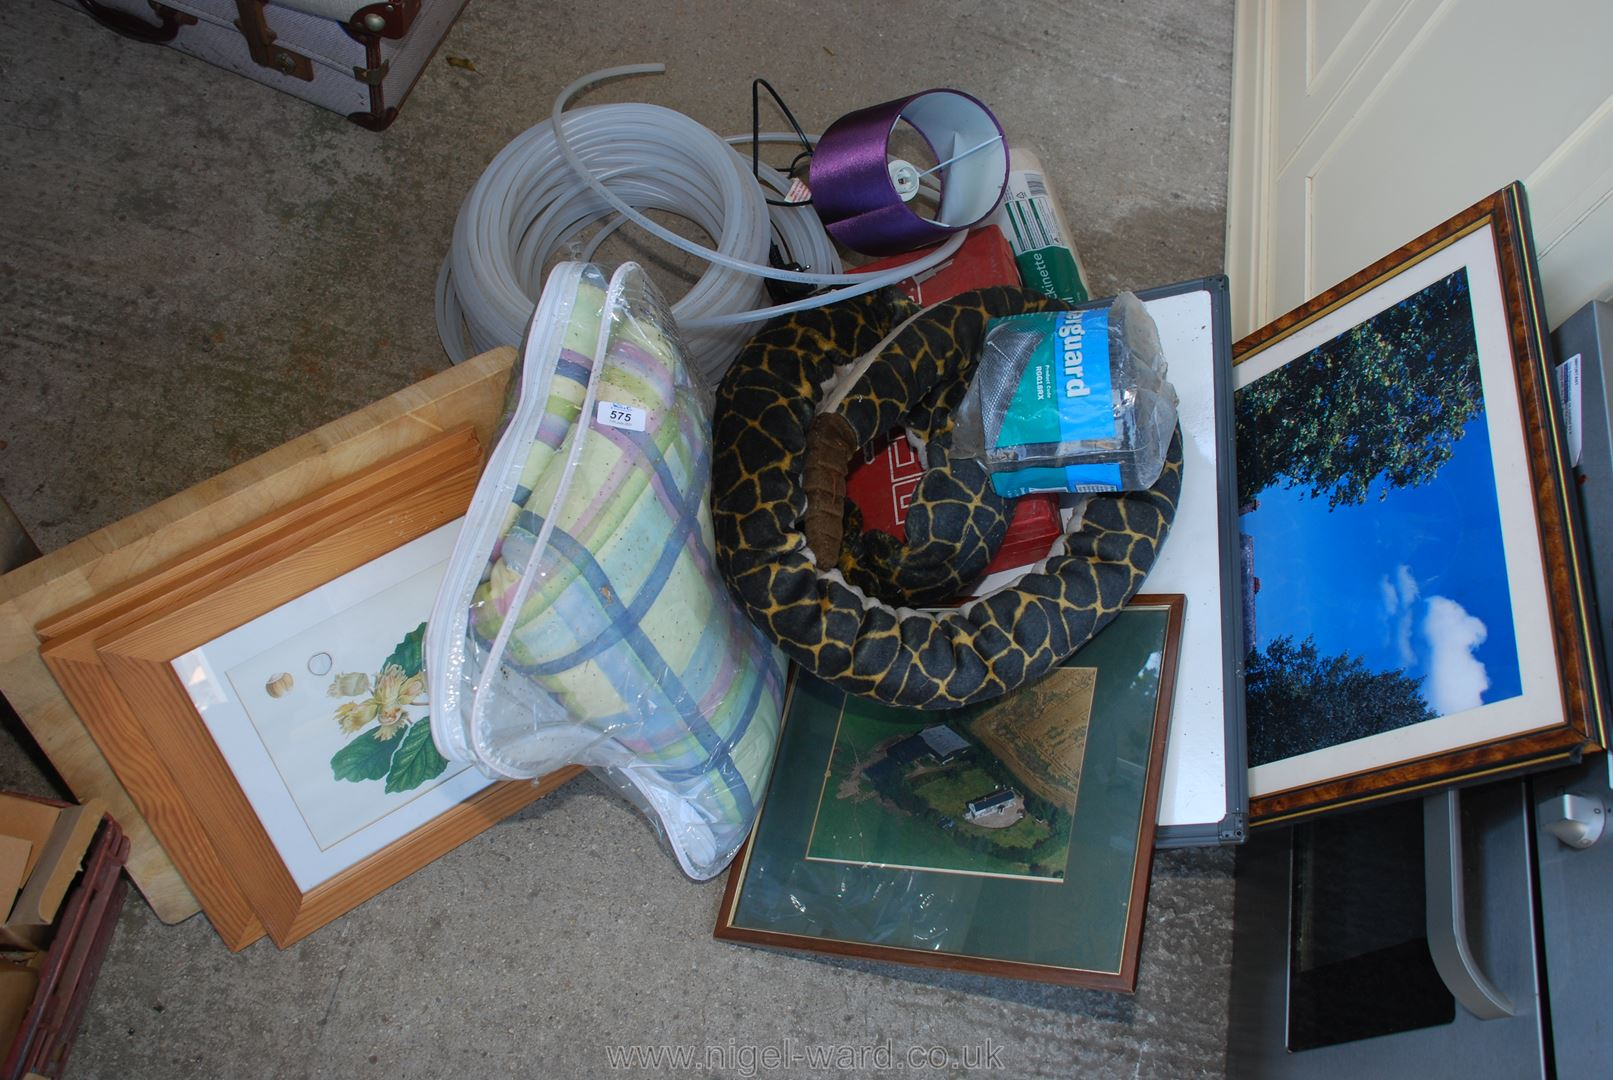 A box of various pictures, cushions, hose, lamps etc.